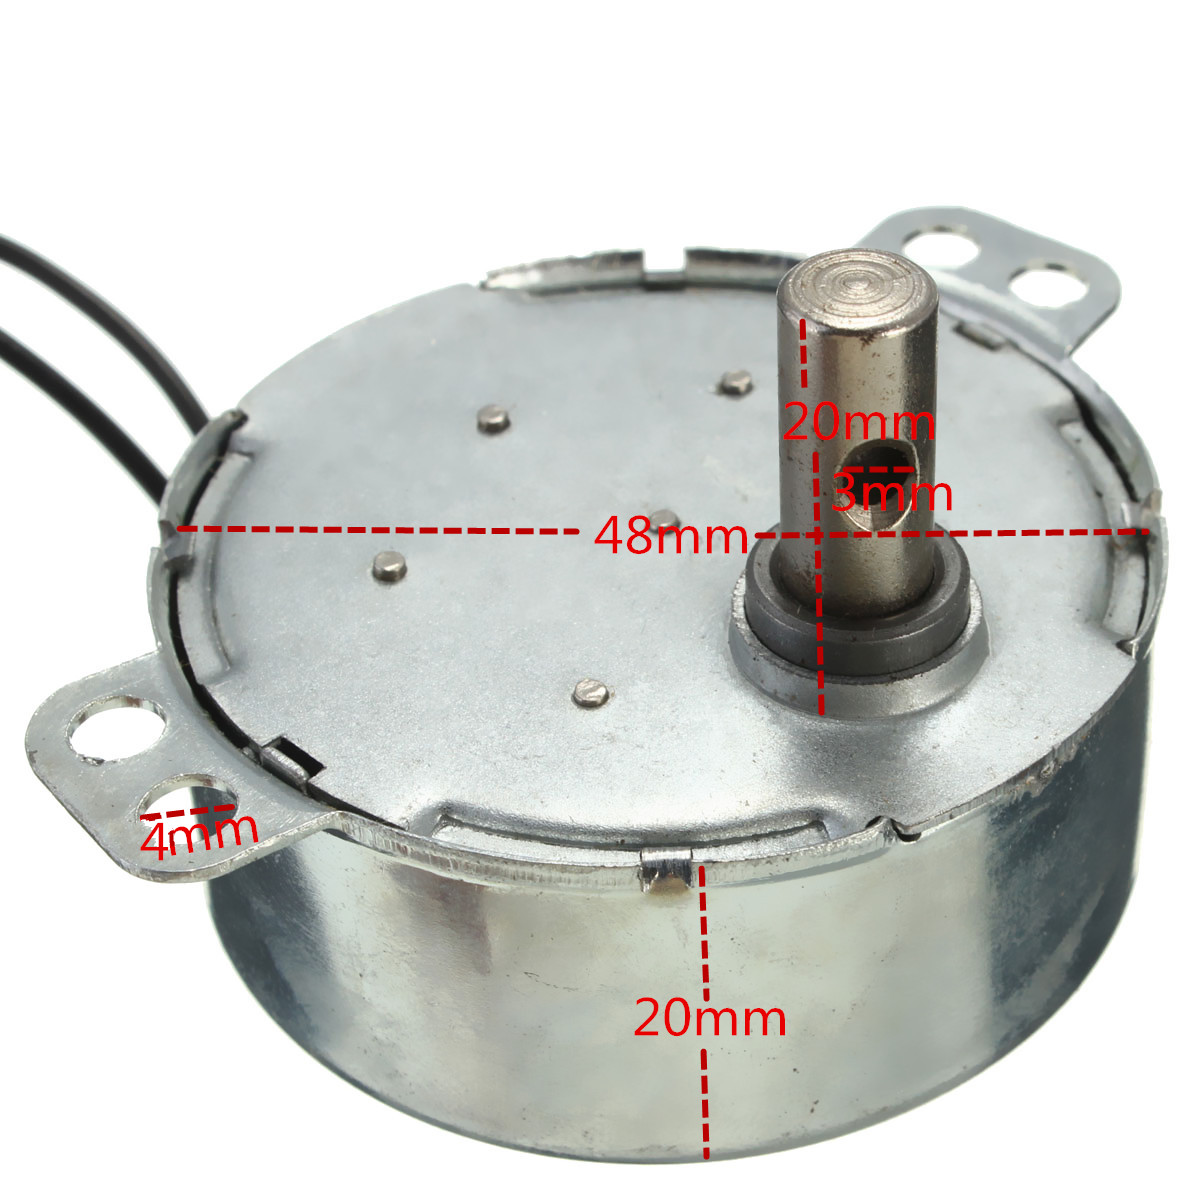 2 5 3rpm turntable synchronous motor 220 240v ac motor 4w for Synchronous motor speed control method